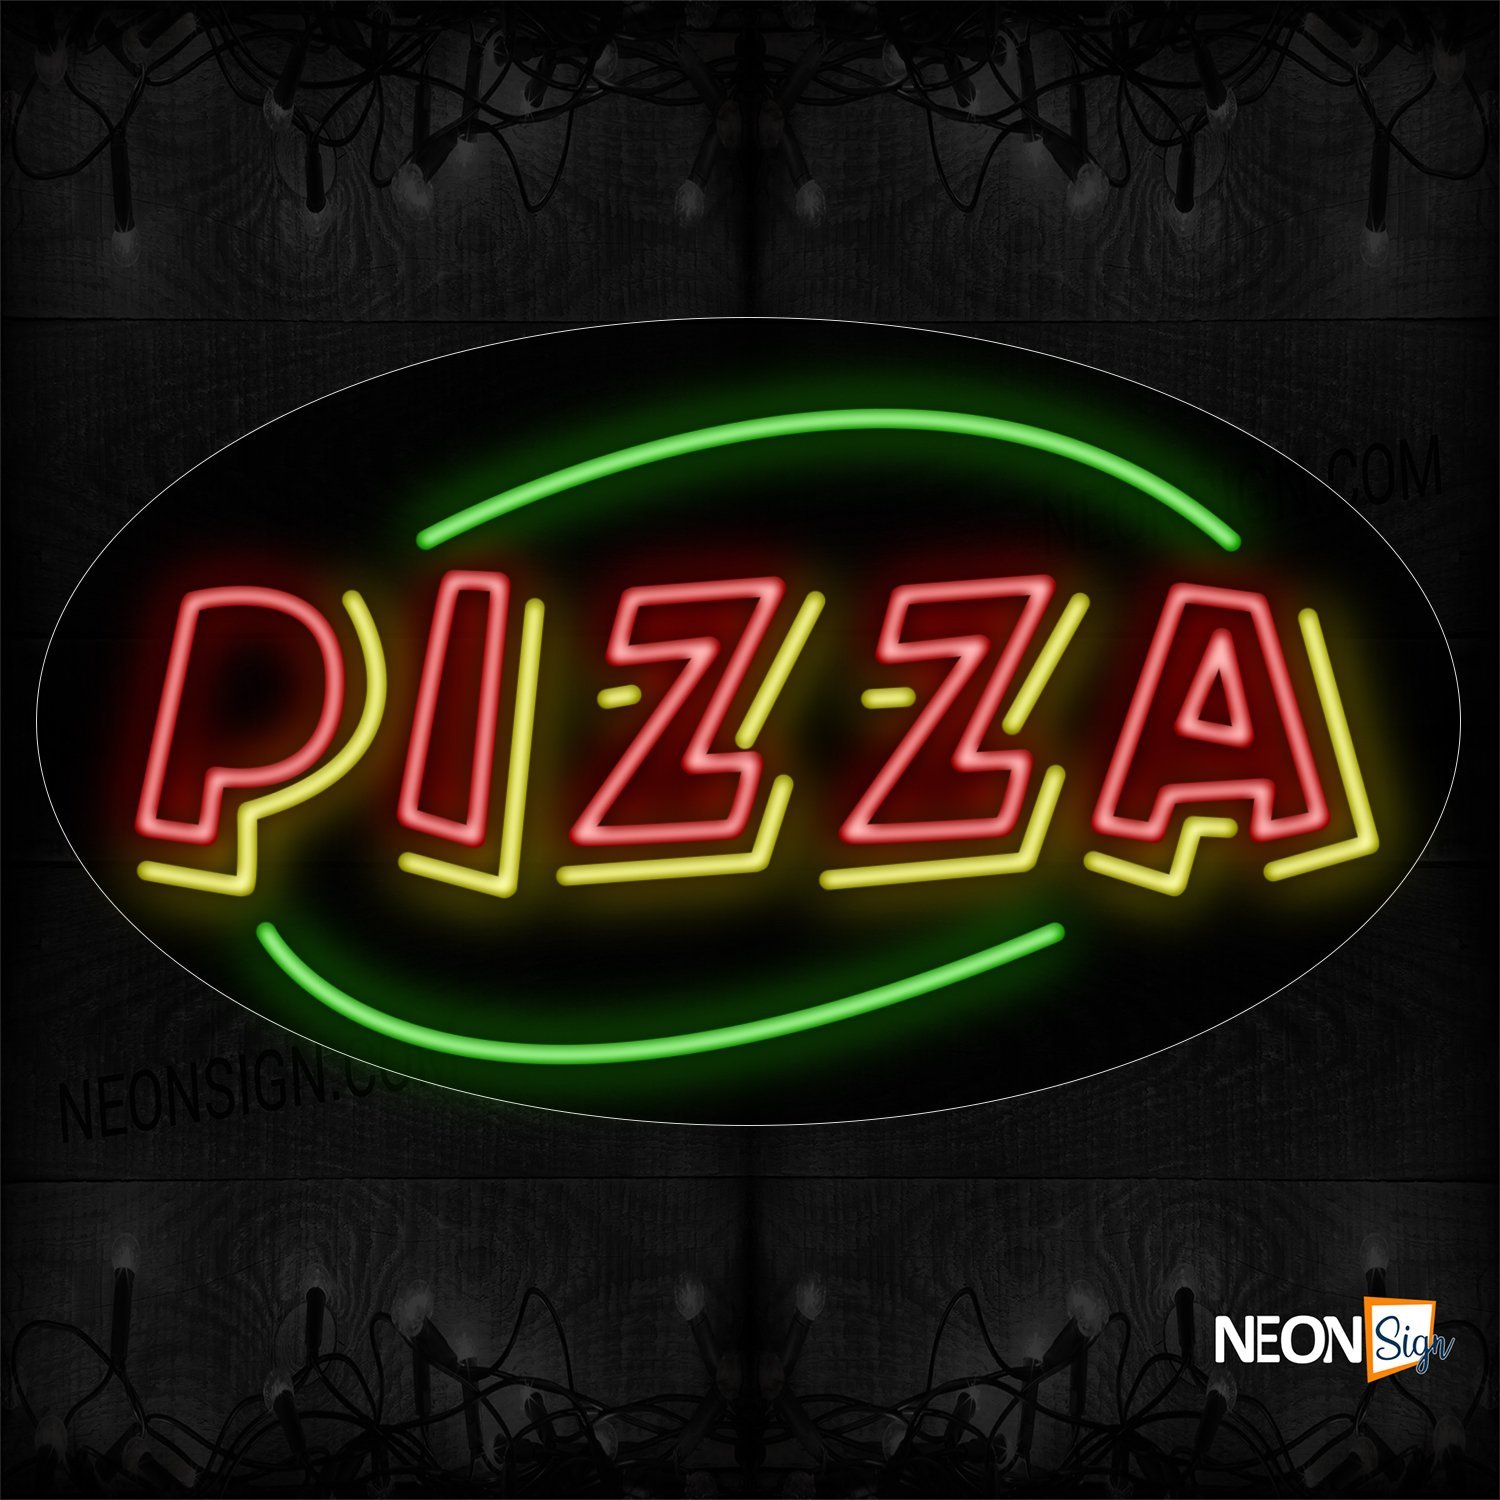 Image of 14468 Double Stroke Pizza With Green Arc Border Neon Sign_17x30 Contoured Black Backing